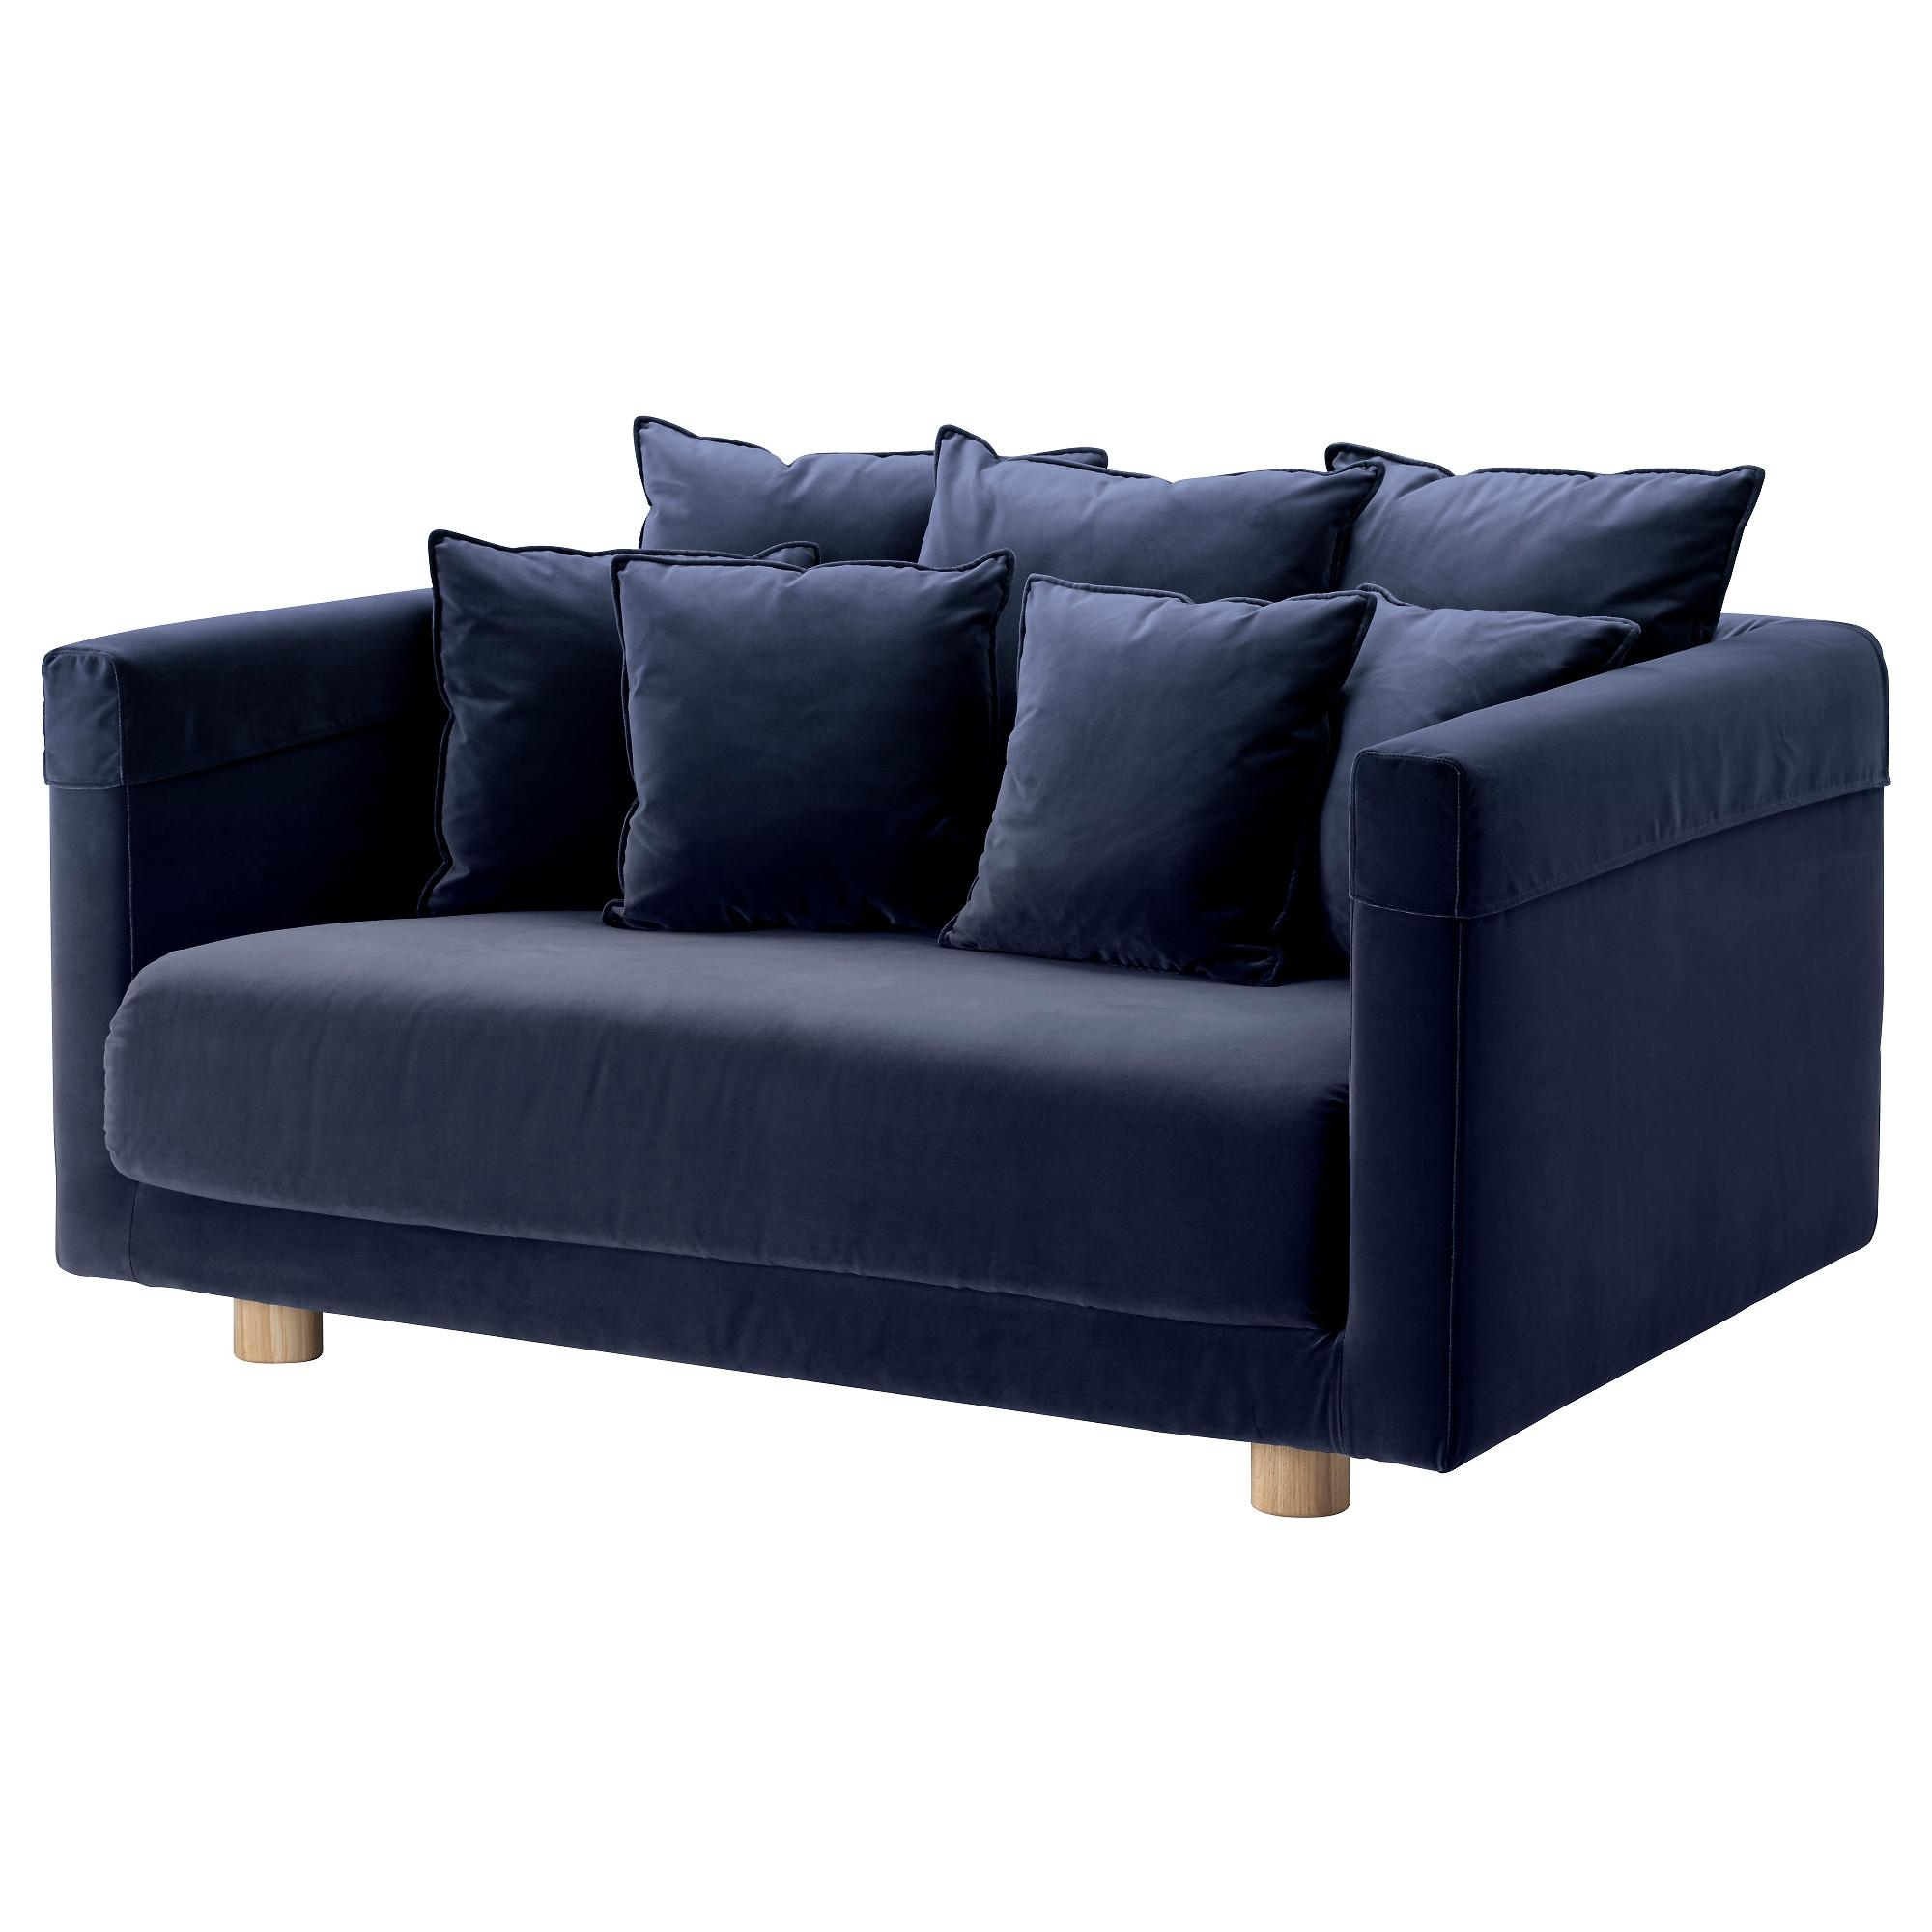 Stockholm 2017 Two Seat Sofa Sandbacka Dark Blue – Ikea Within Ikea Two Seater Sofas (View 10 of 20)